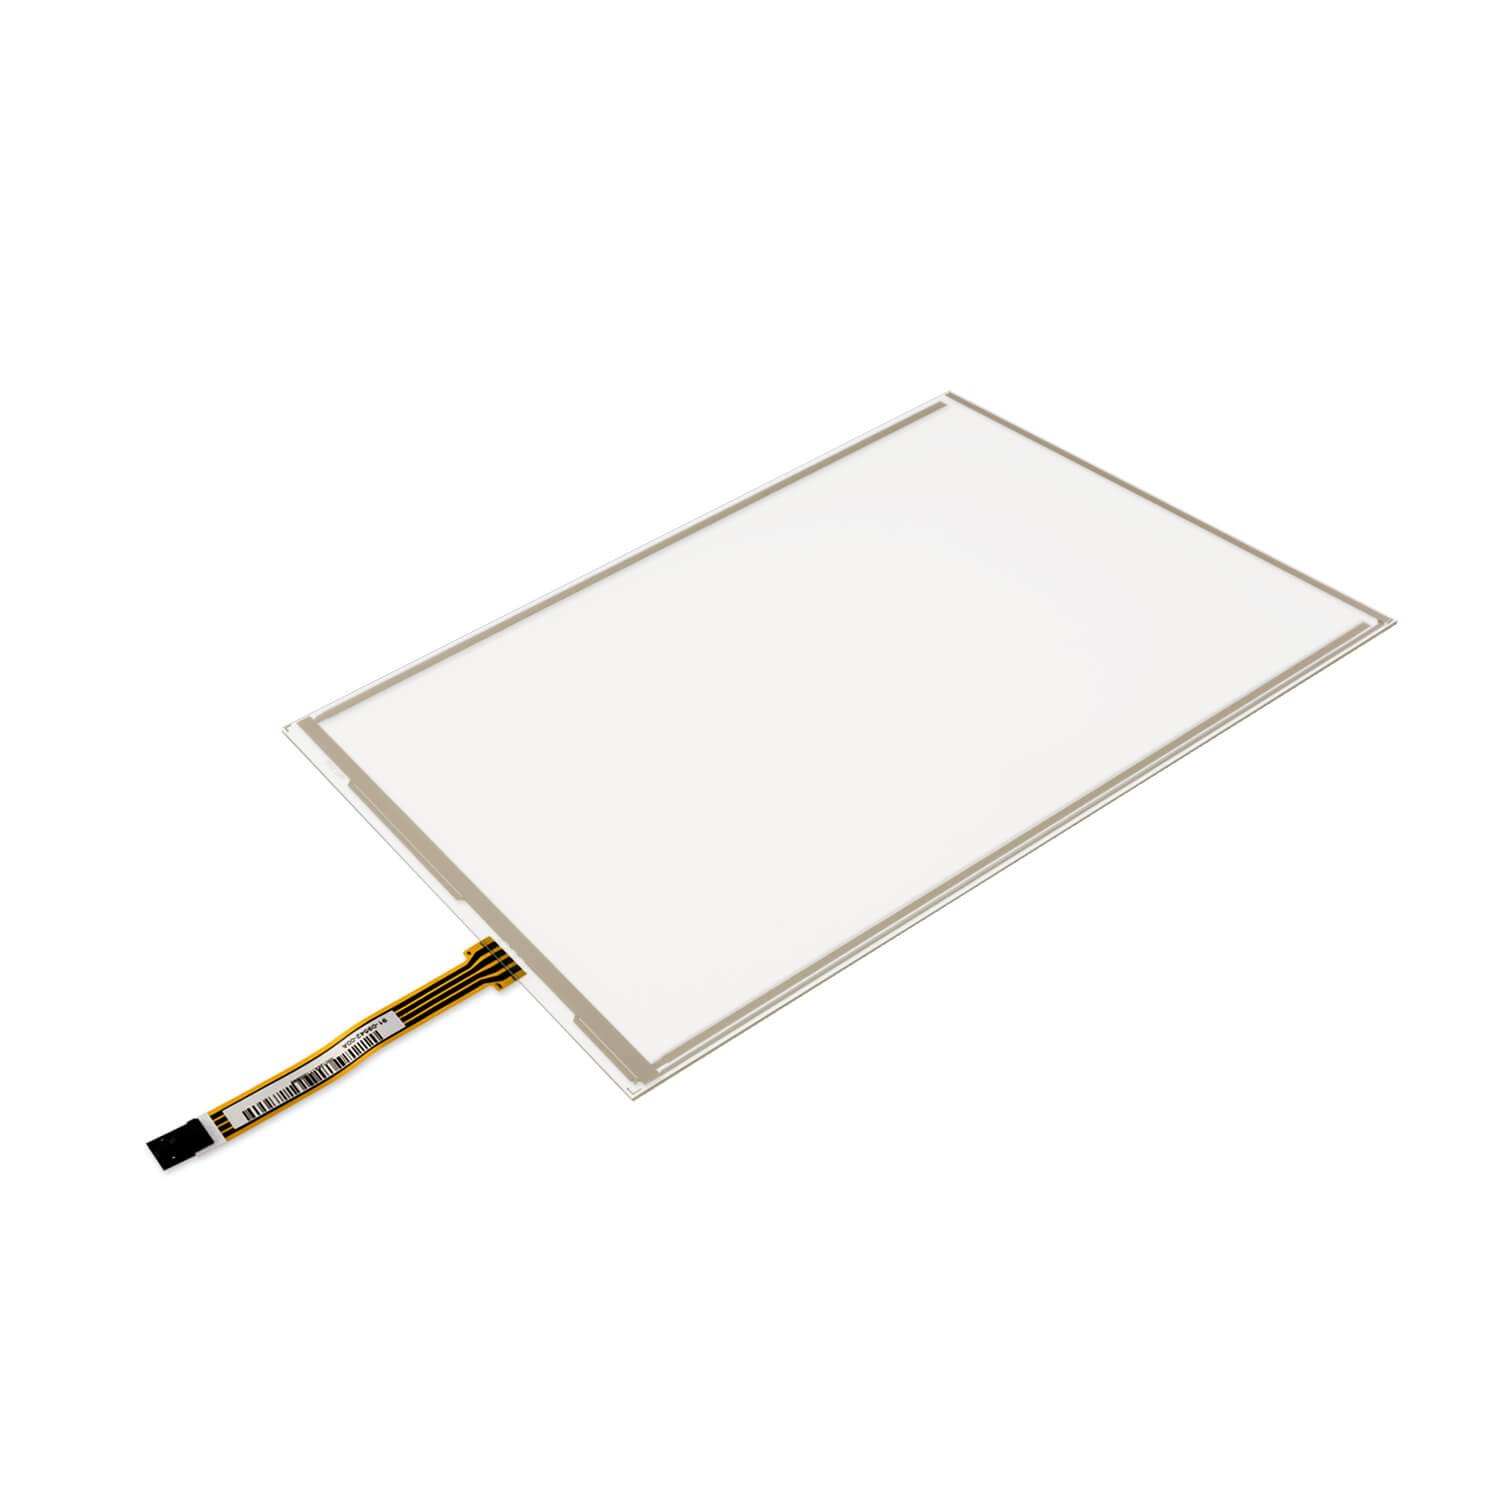 RTP12.1-4W-AMT-9542-00A - resistive touch screen (12.1-inch, 16:9 aspect ratio, 1.8 mm glass)